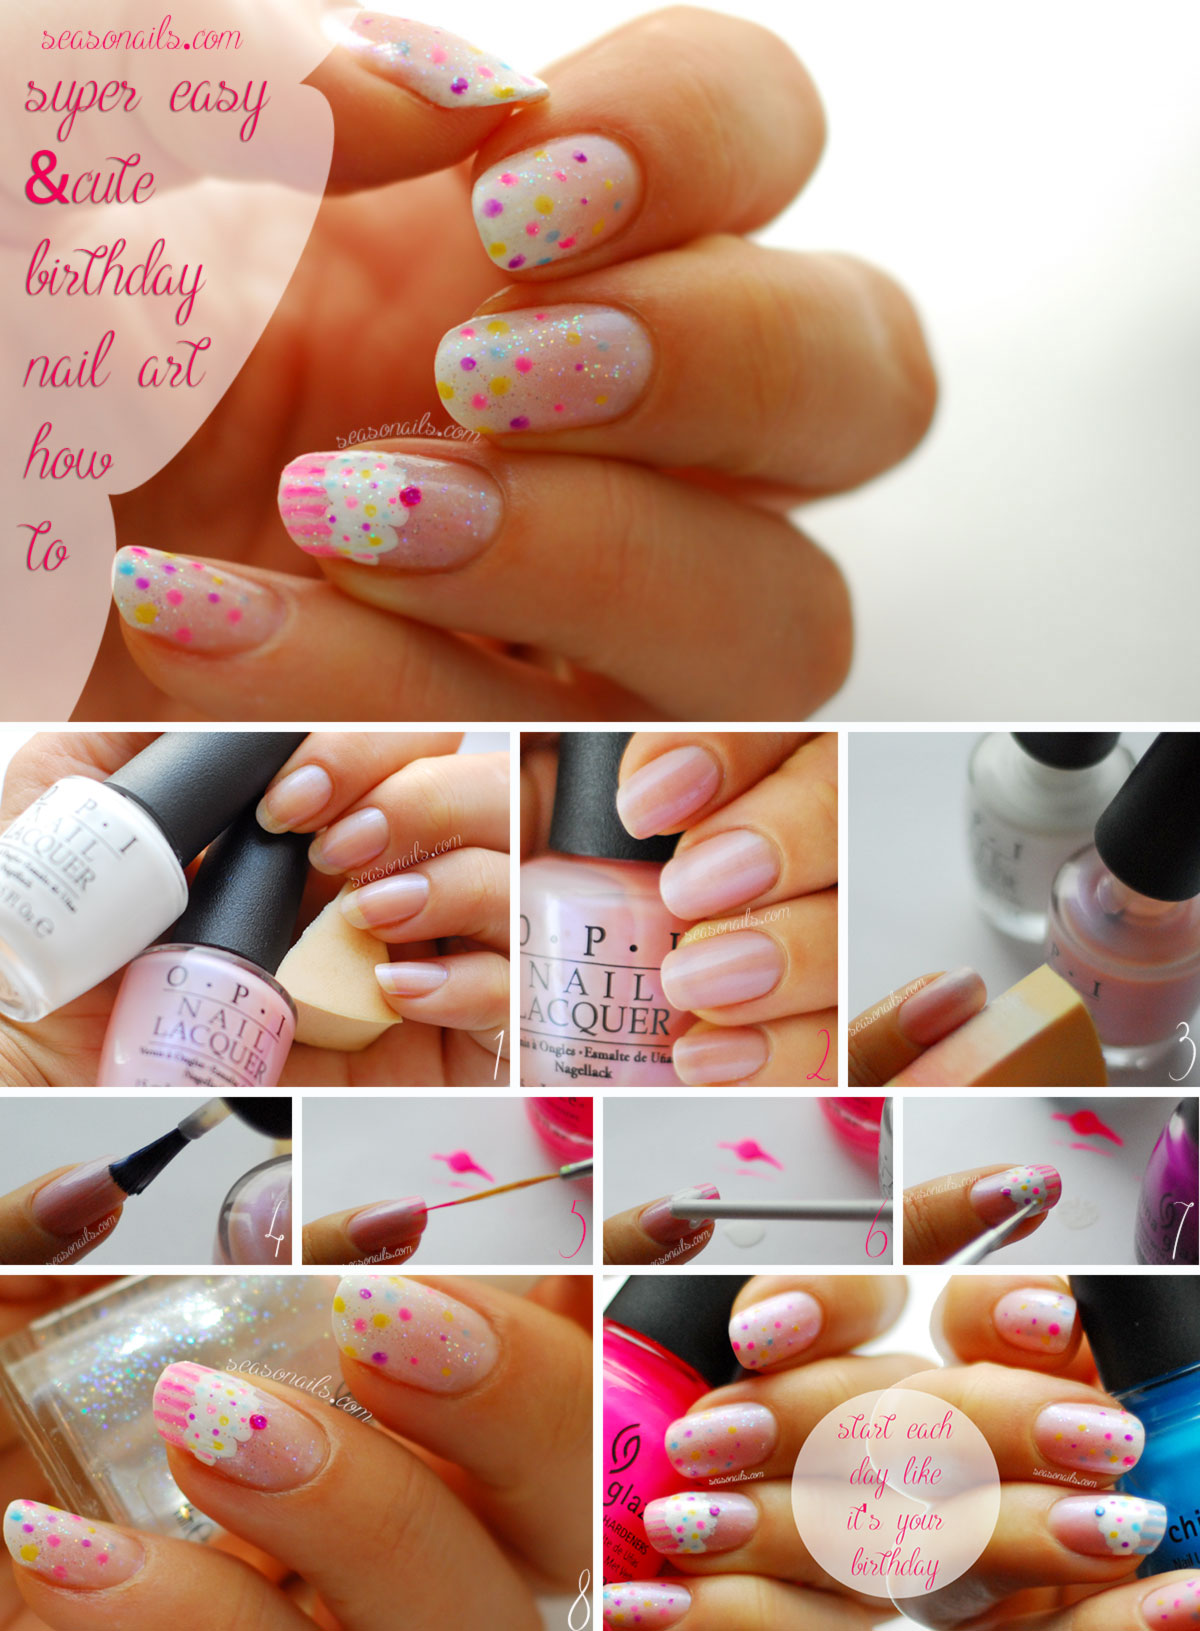 easy birthday nails Seasonails nail art tutorial